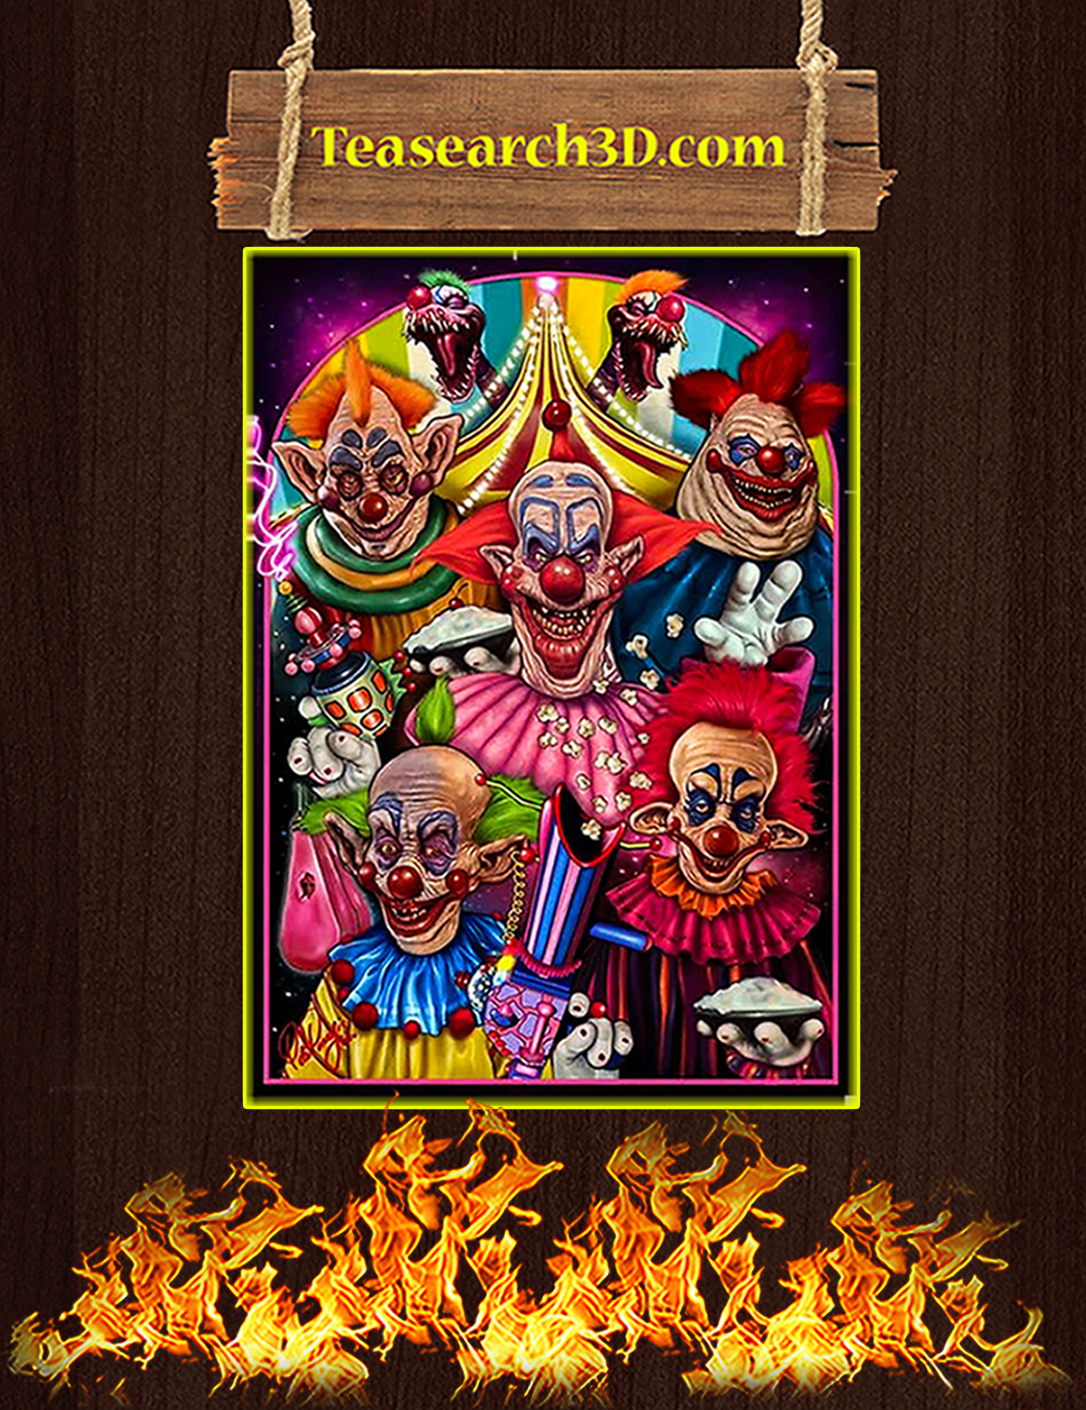 Killer klowns from outer space poster A2